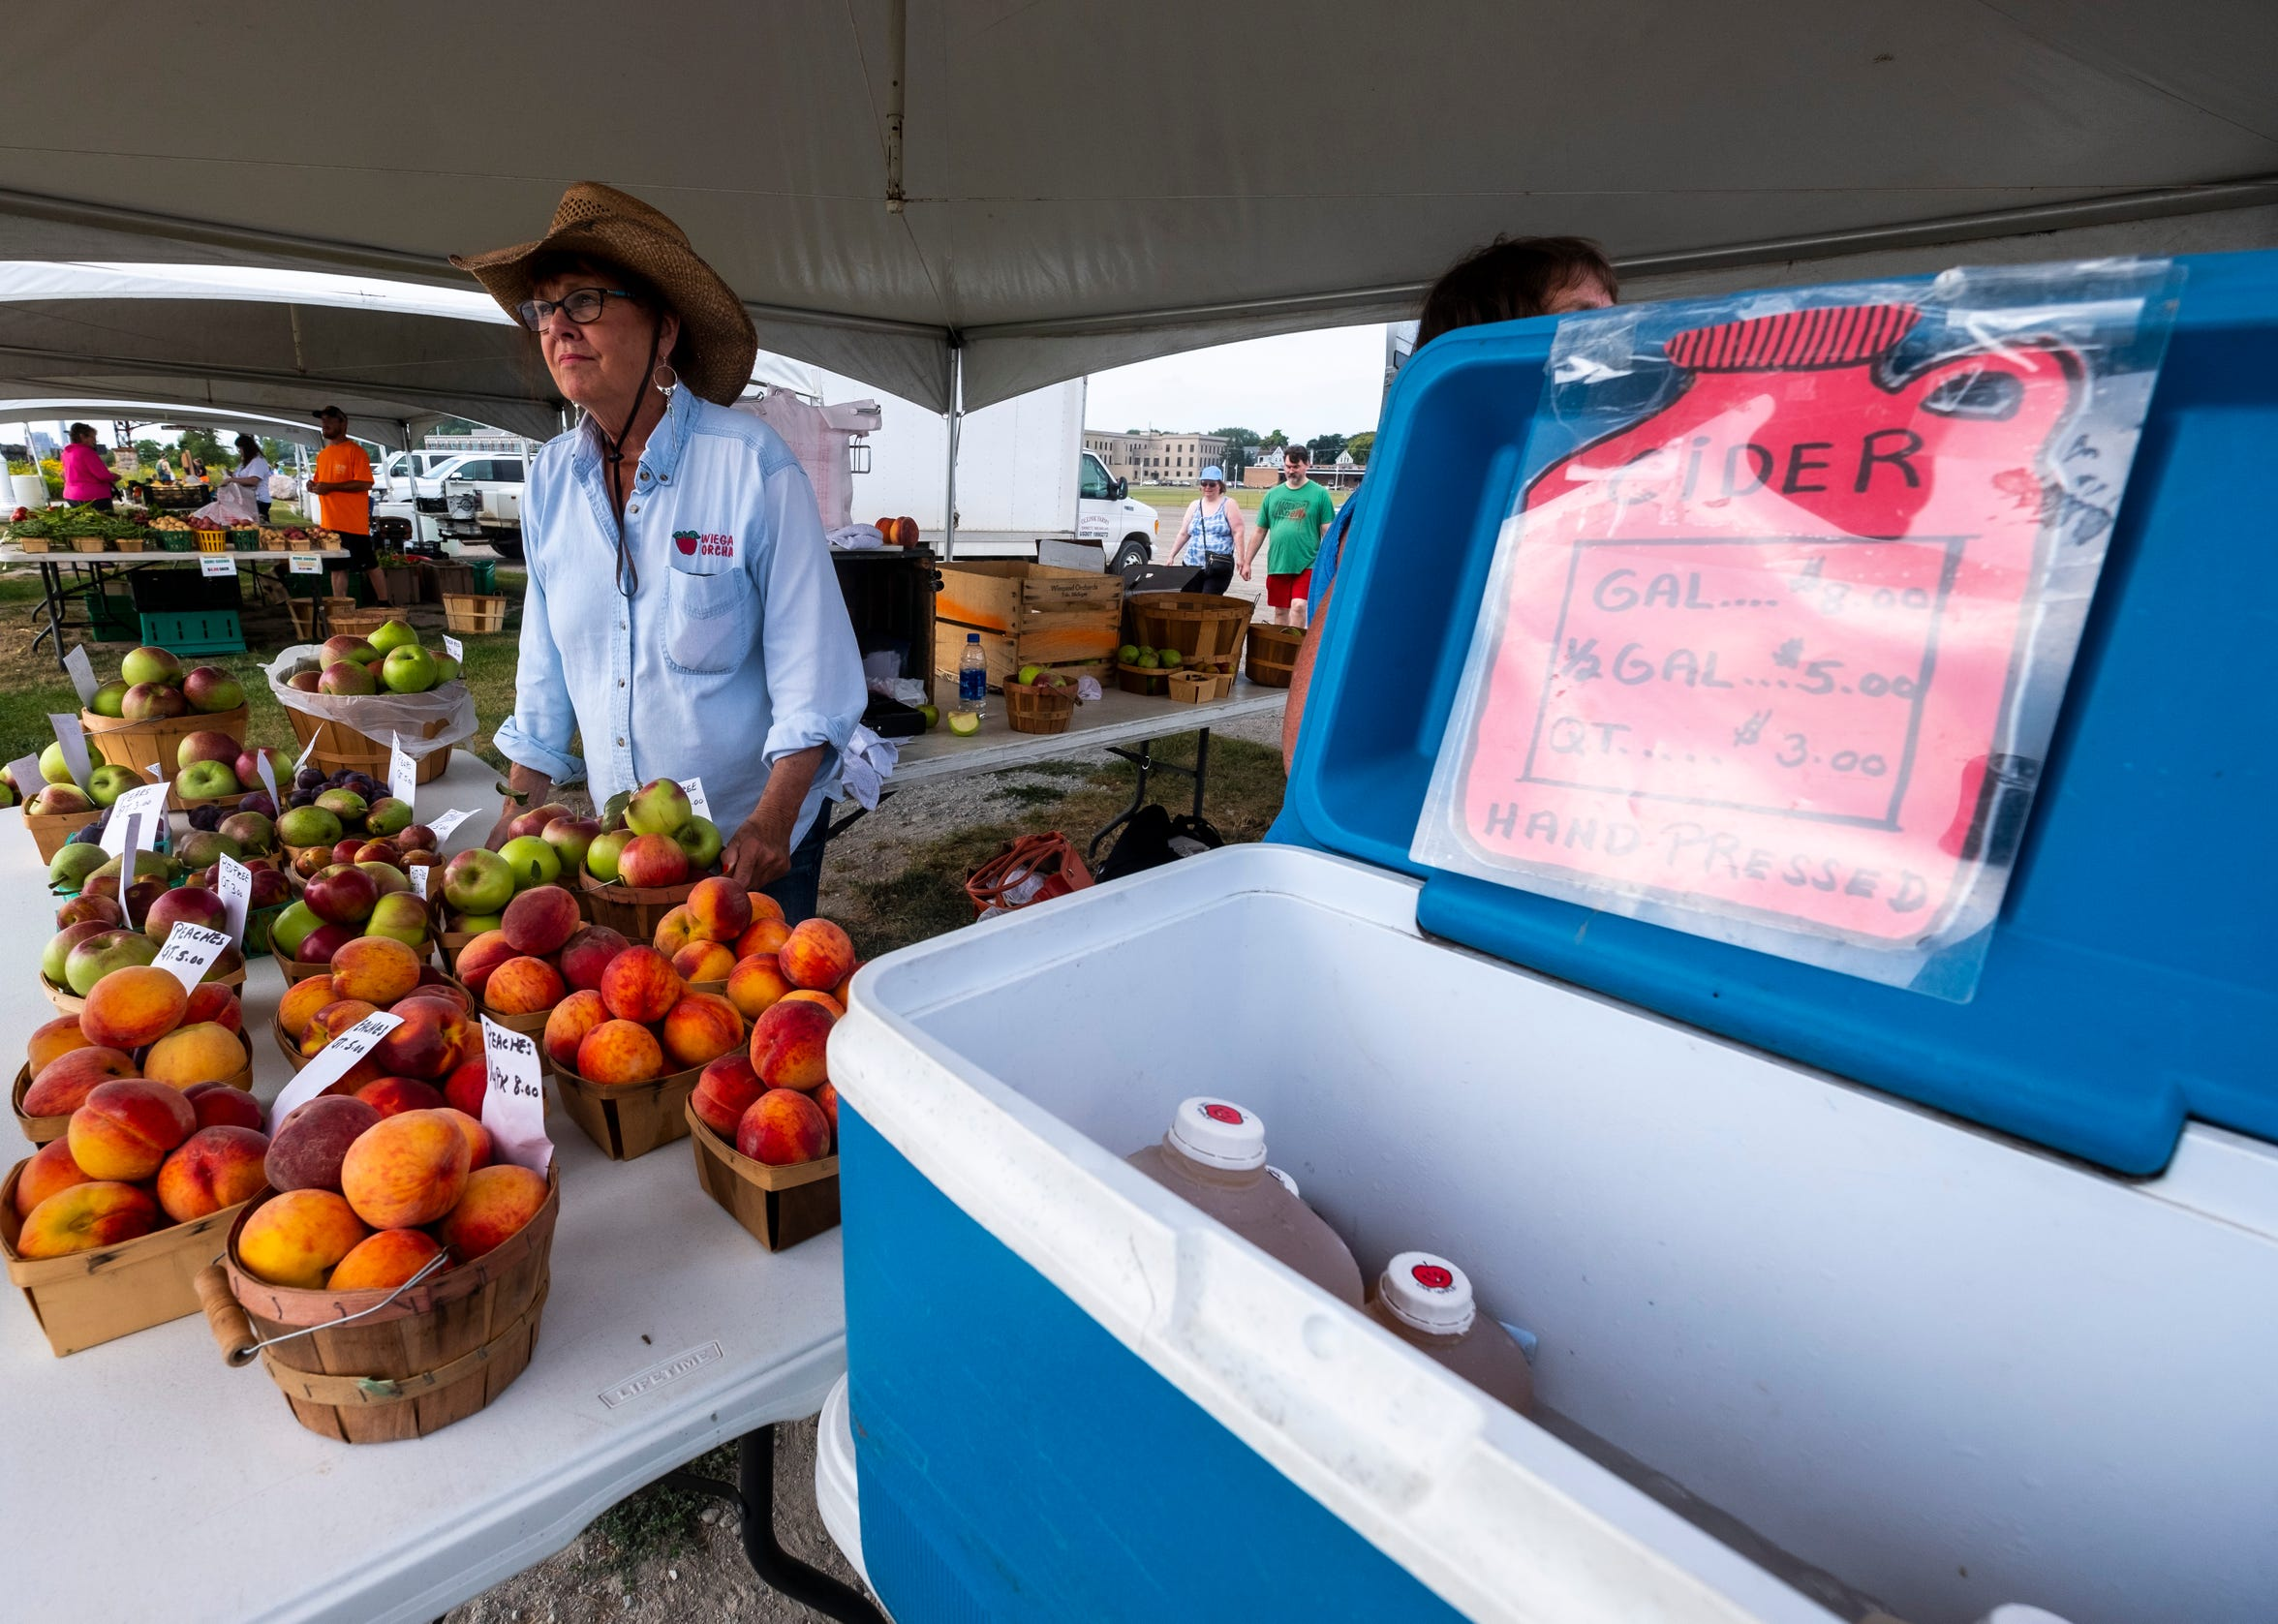 Joann Tanton works behind the tables of the Wiegand Orchard stand at the Vantage Point Farmer's Market Tuesday, Aug. 20, 2019, at Desmond Landing.